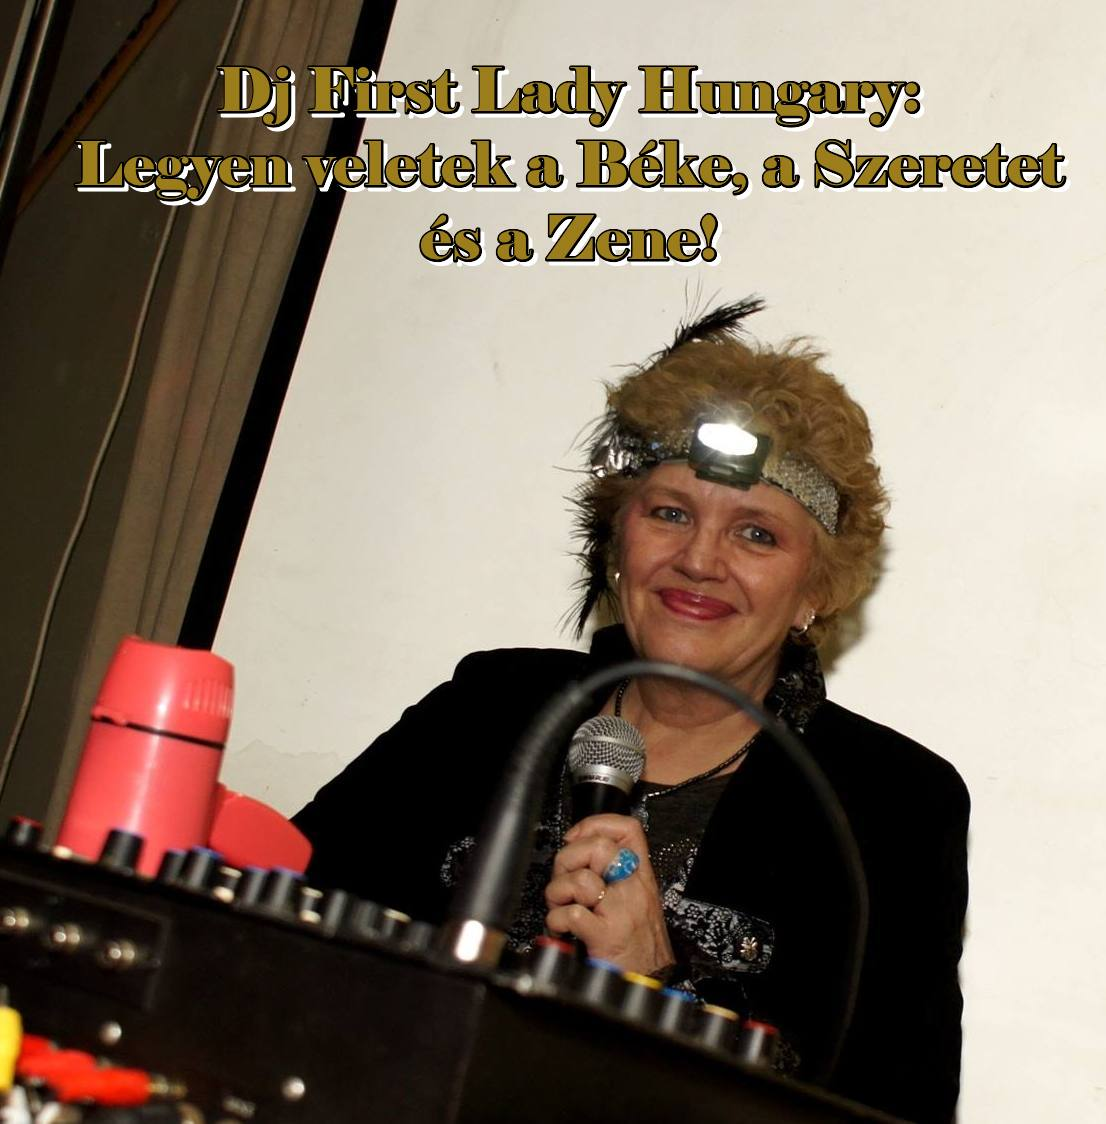 DJ First Lady Hungary